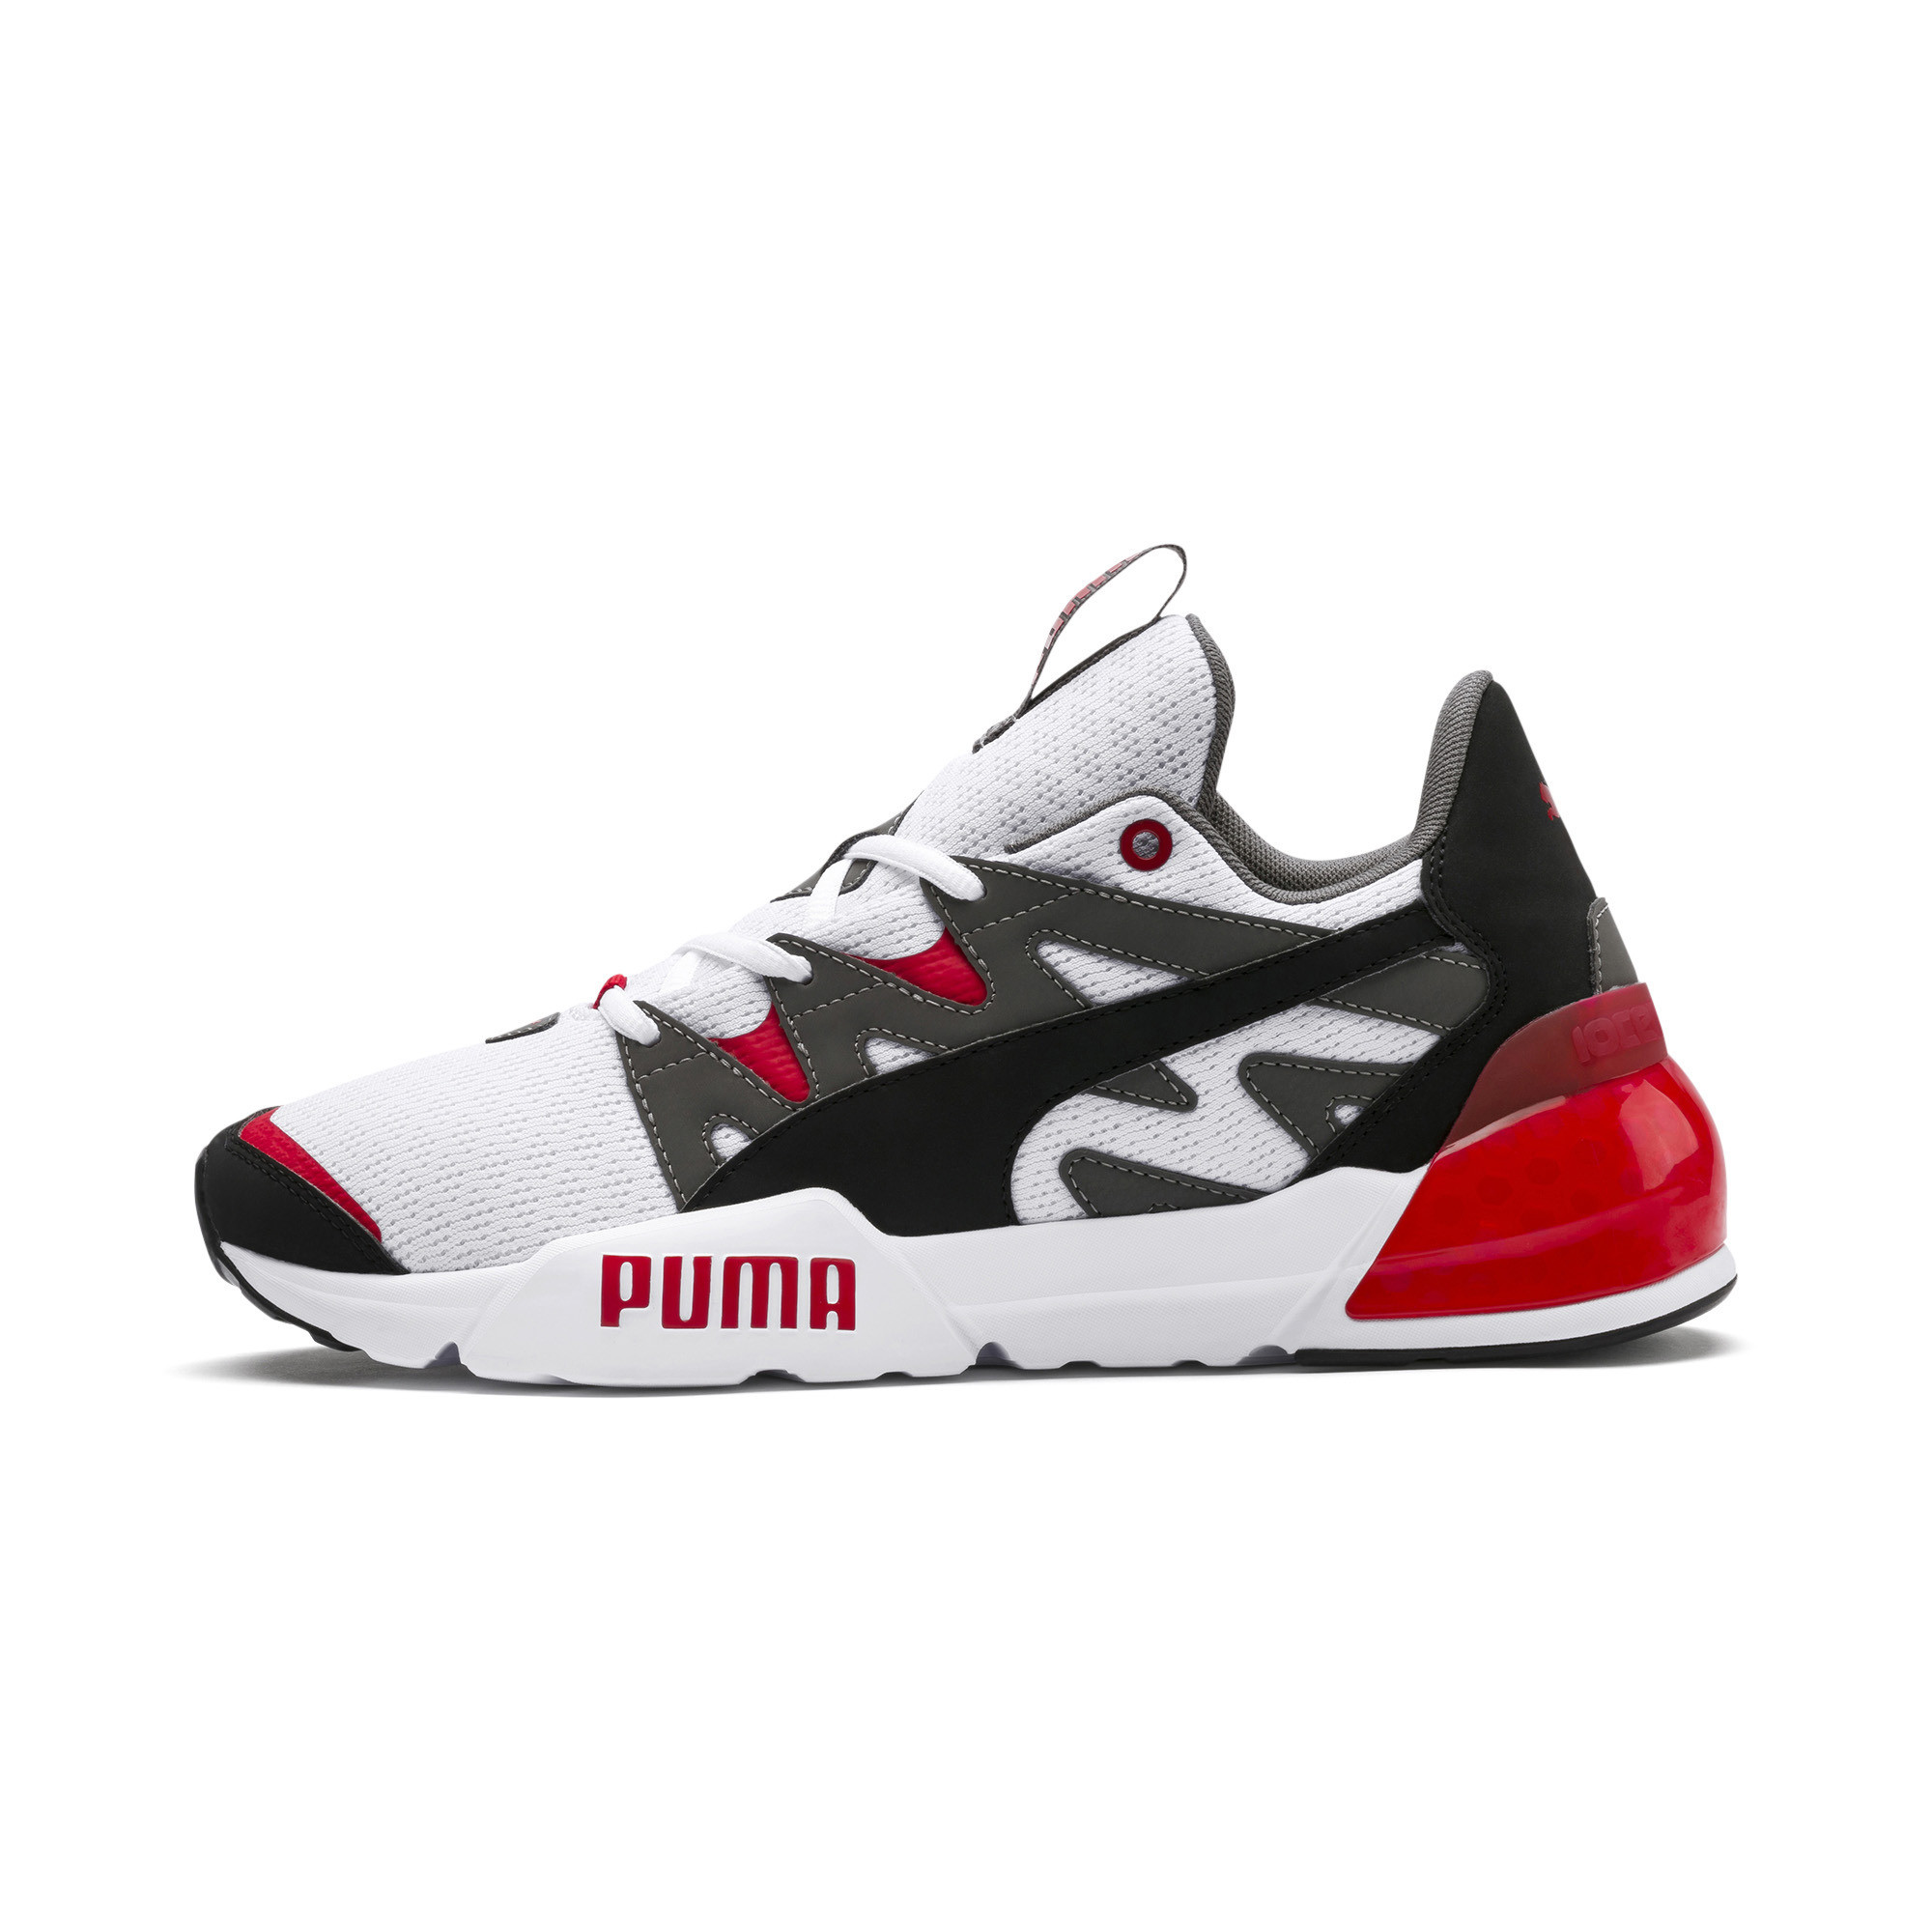 PUMA-Men-039-s-CELL-Pharos-Training-Shoes thumbnail 4